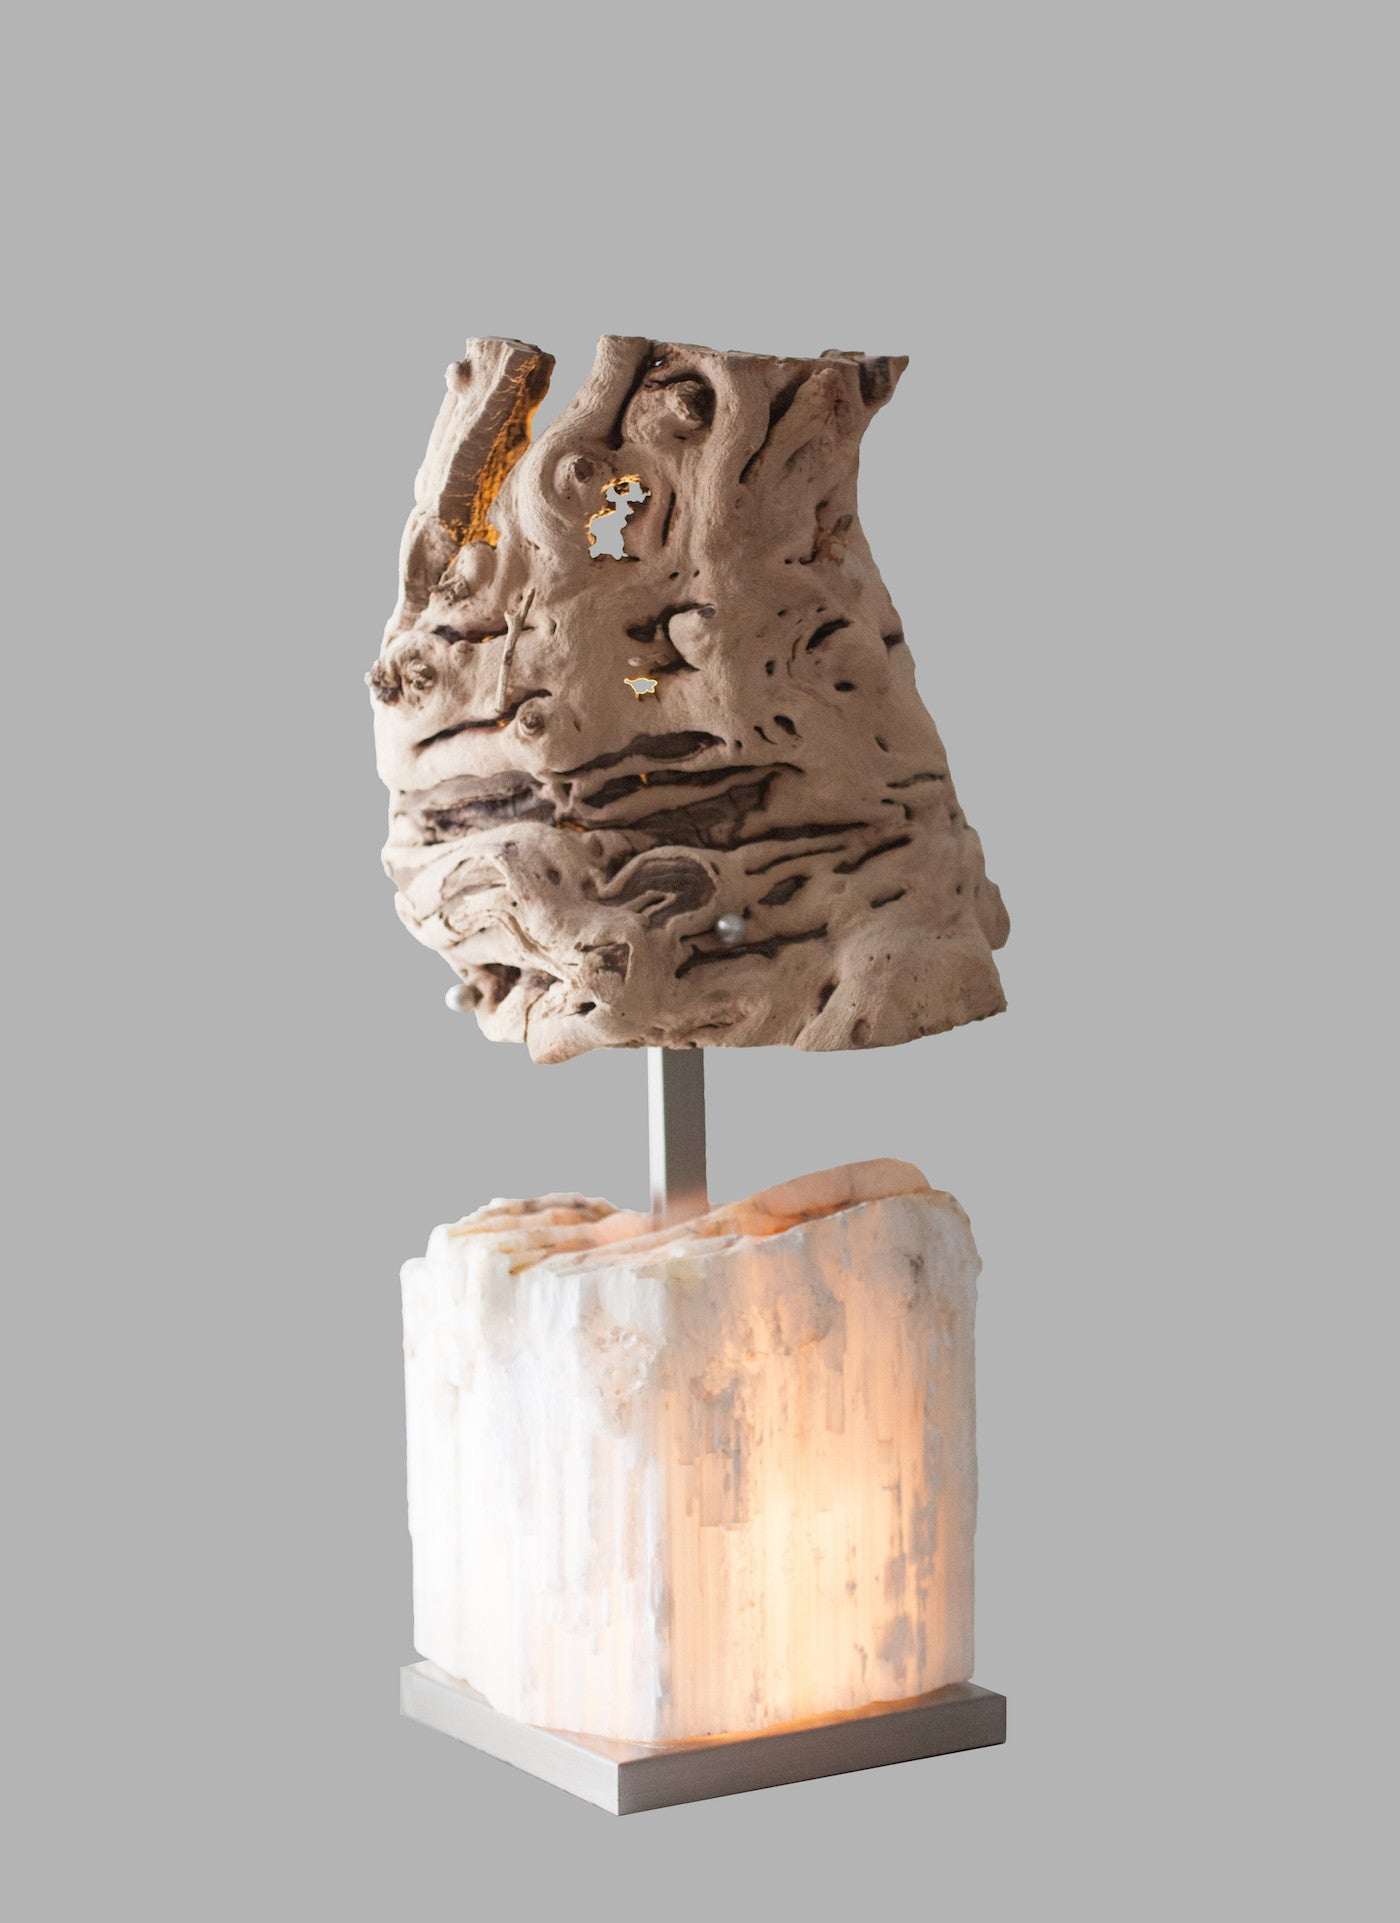 Stalagmite Small Table Lamp Selenite Grapewood